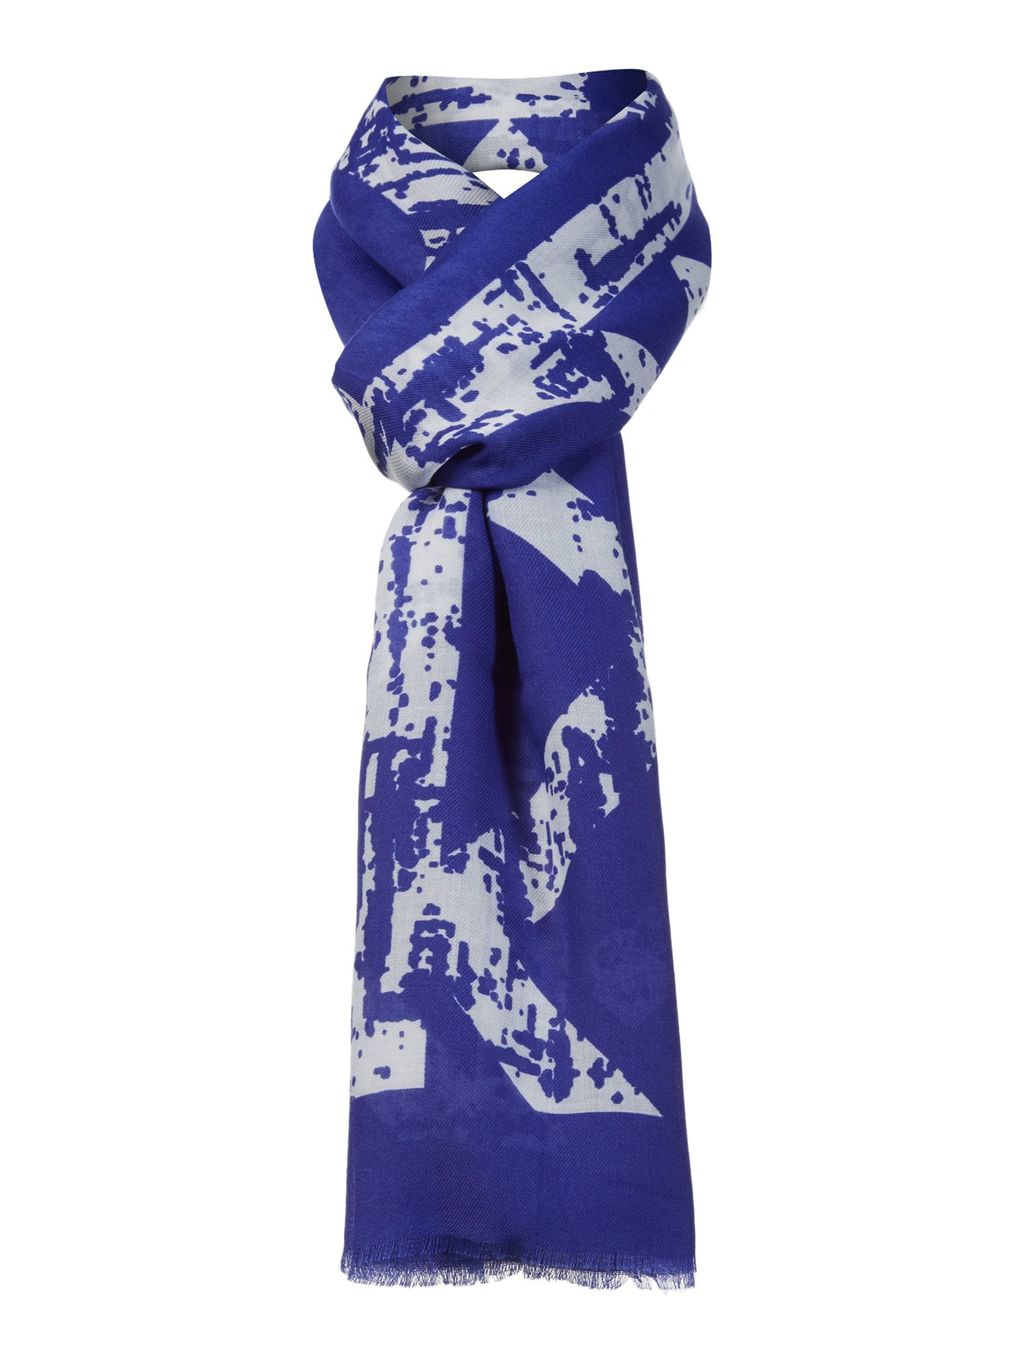 Neon Scarf, Cobalt - predominant colour: purple; occasions: casual, creative work; type of pattern: heavy; style: regular; size: standard; material: fabric; pattern: patterned/print; season: a/w 2015; wardrobe: highlight